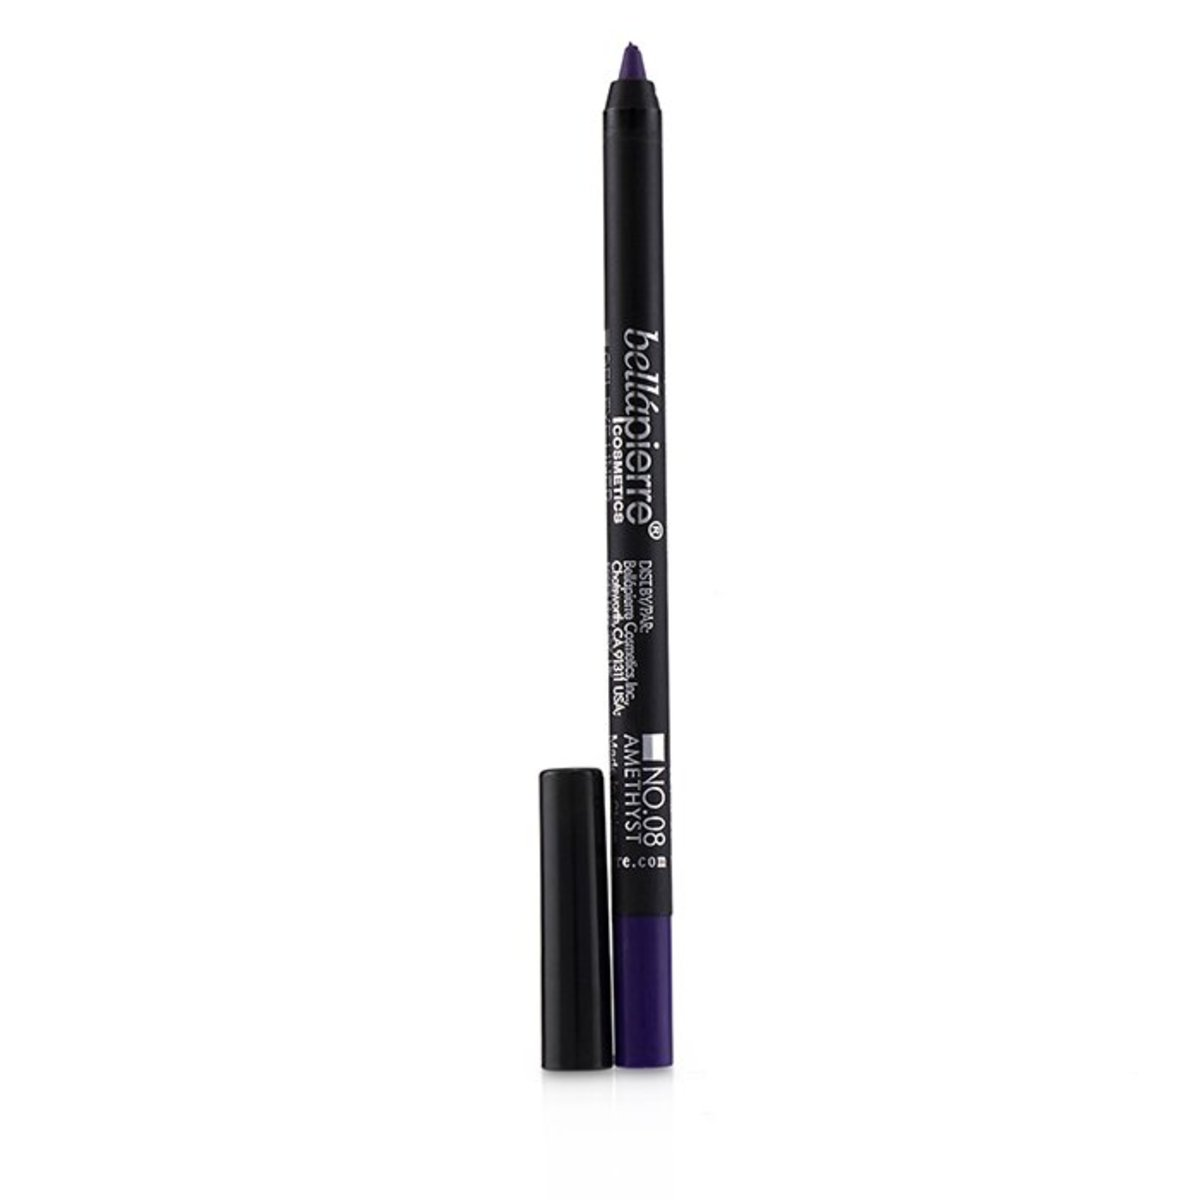 Gel Eye Liner - # Amethyst 1.8g [Parallel Import]